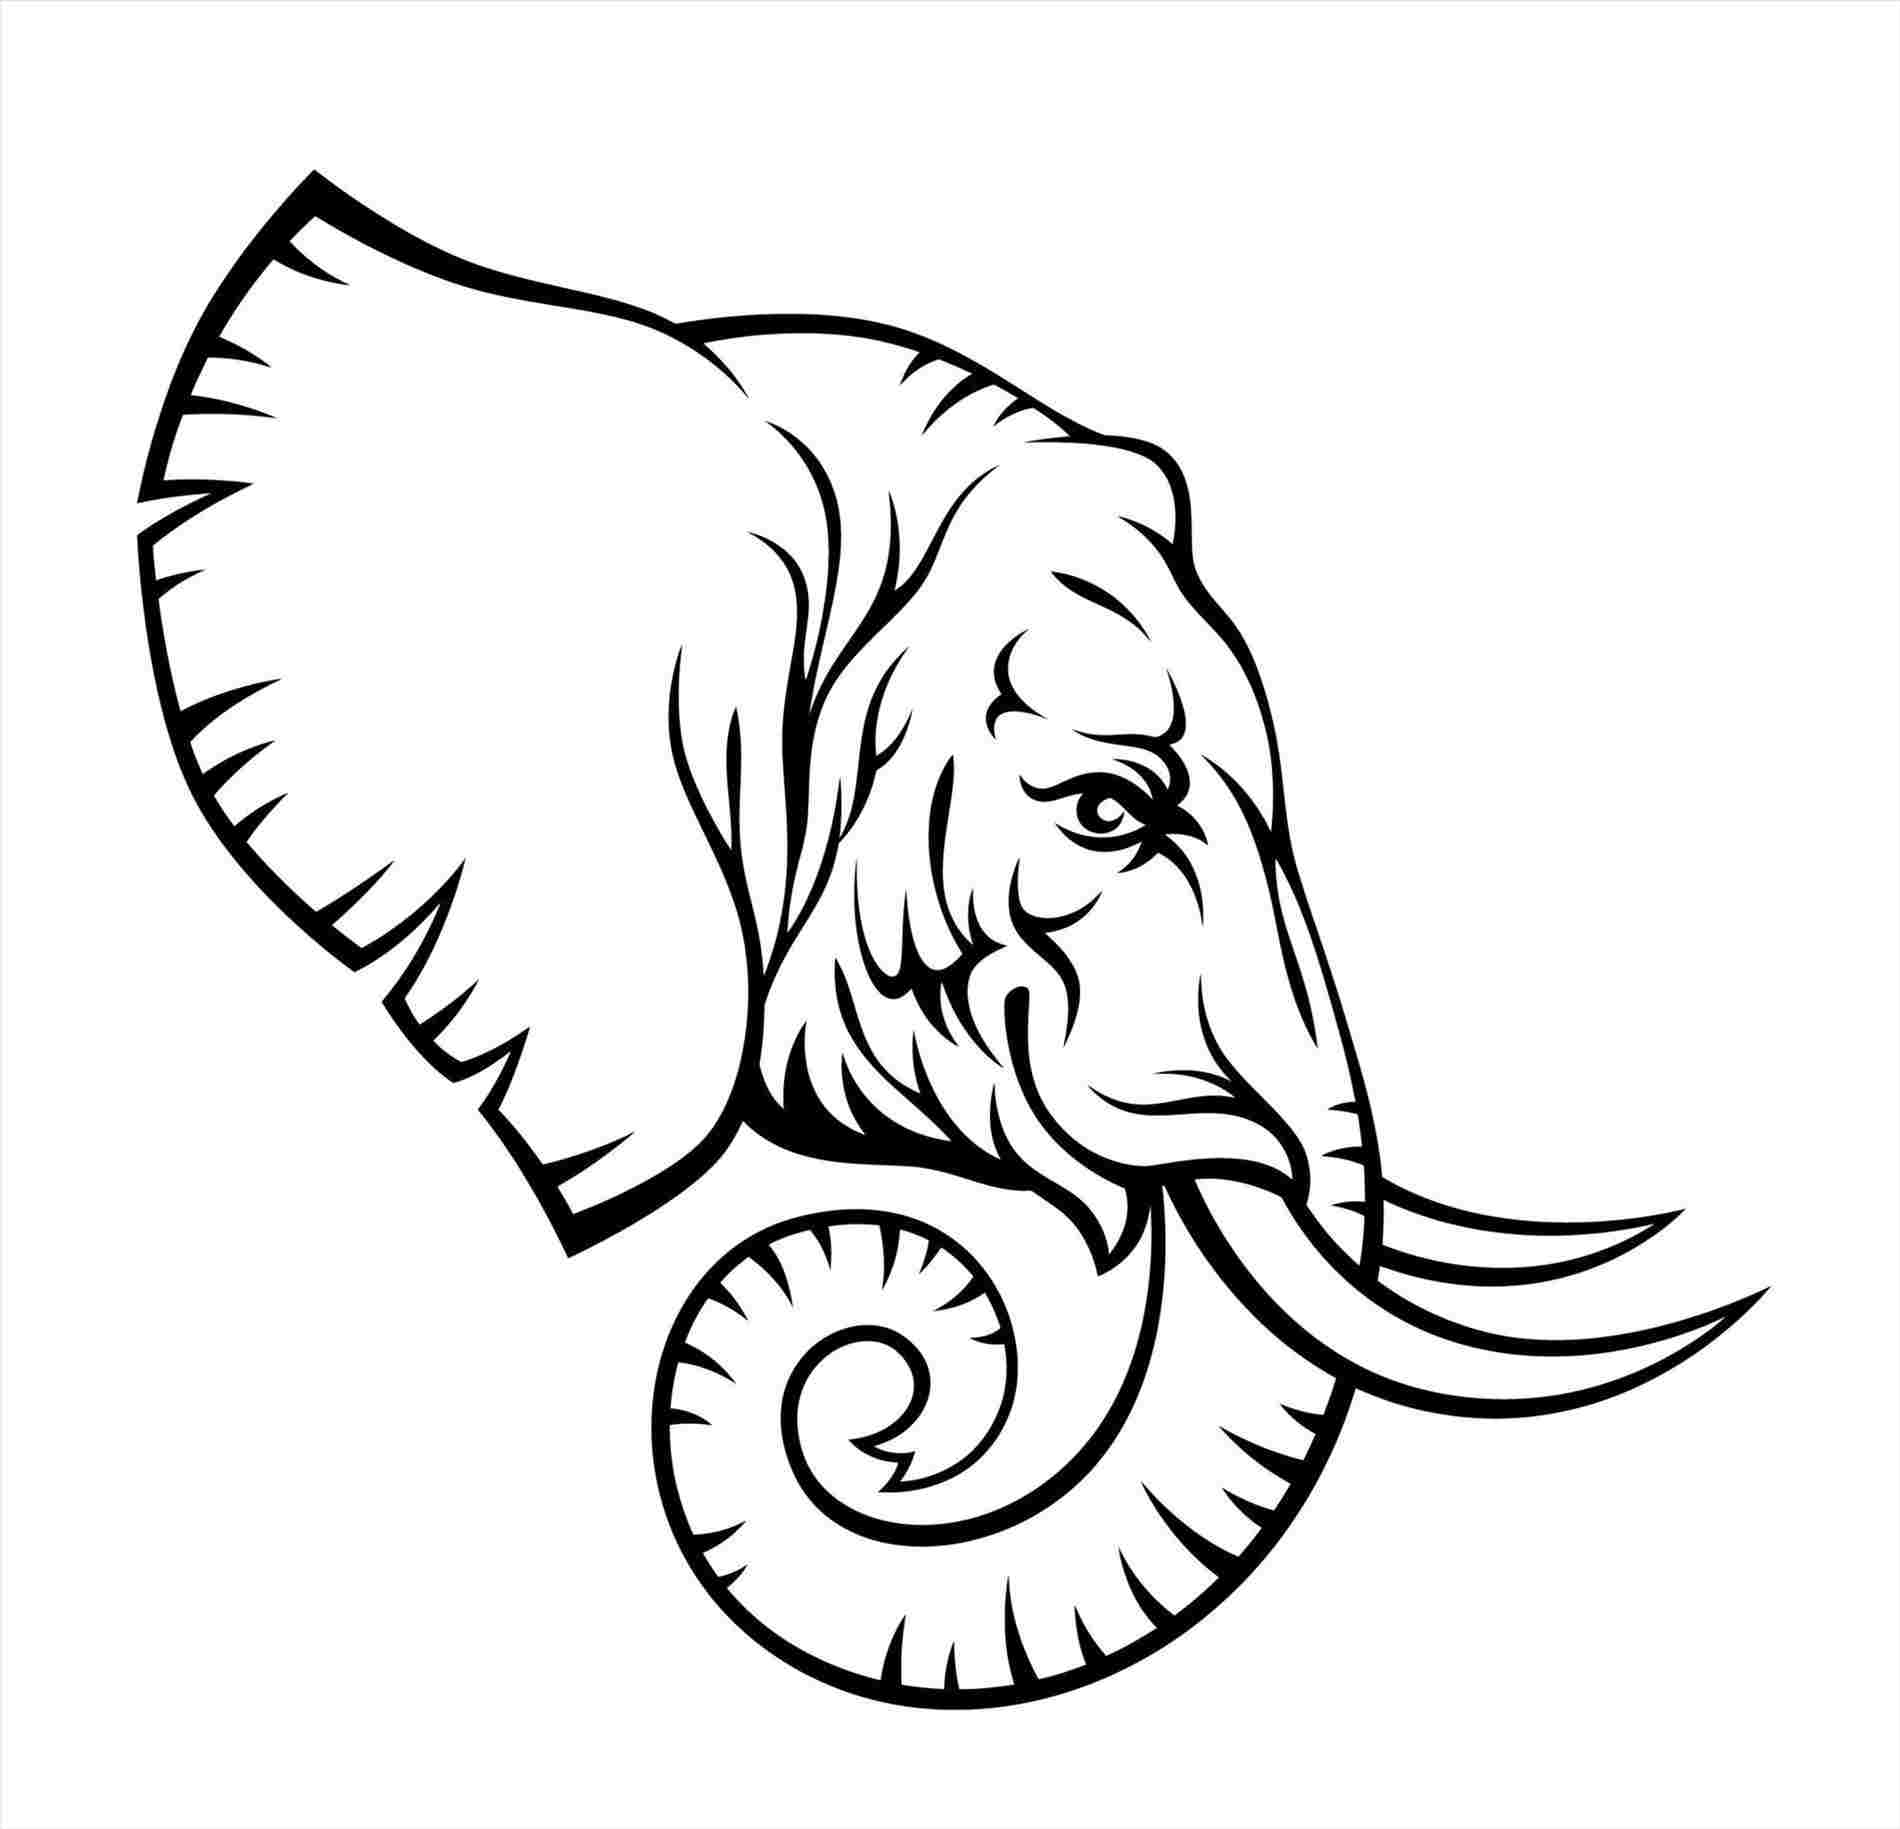 1900x1829 How To Draw An Elephant Face Profile